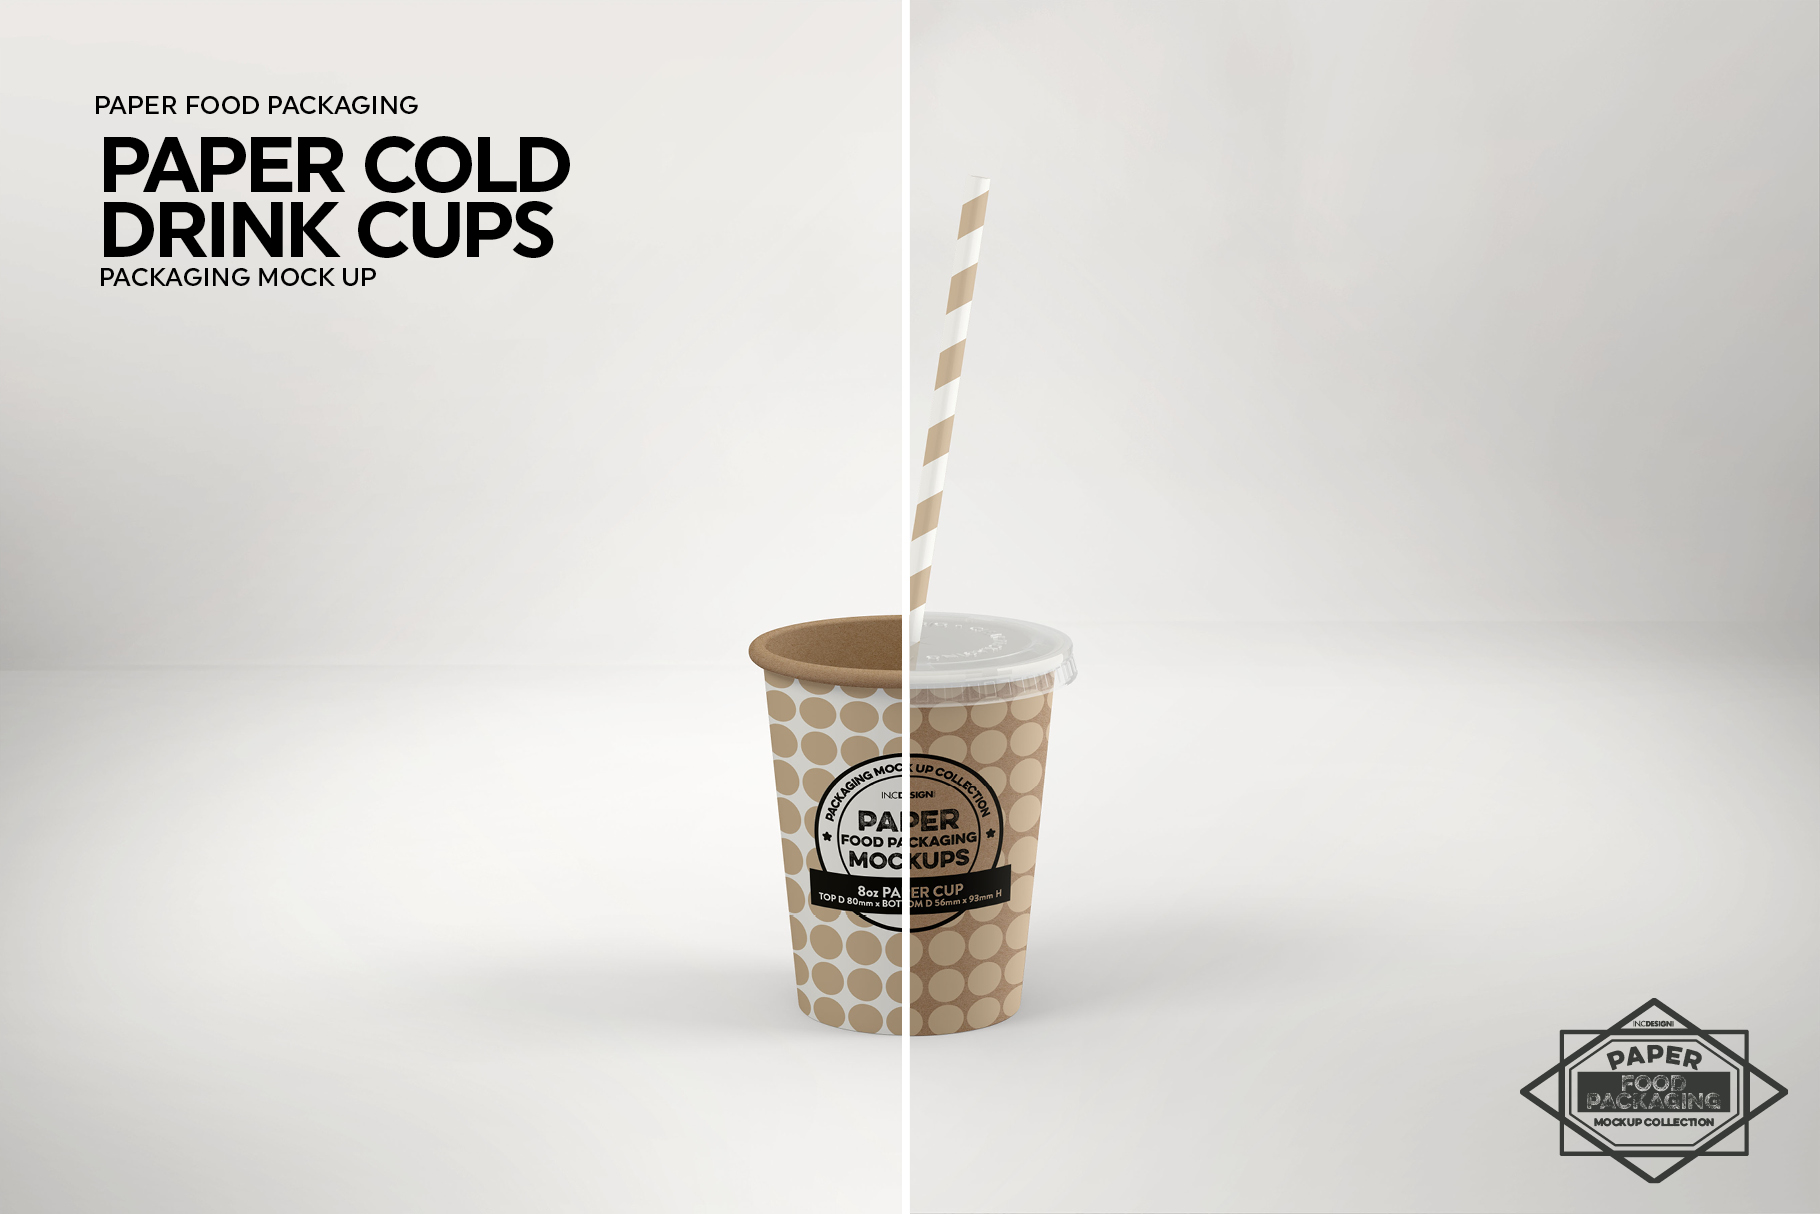 Paper Drink Cups Packaging Mockup example image 7